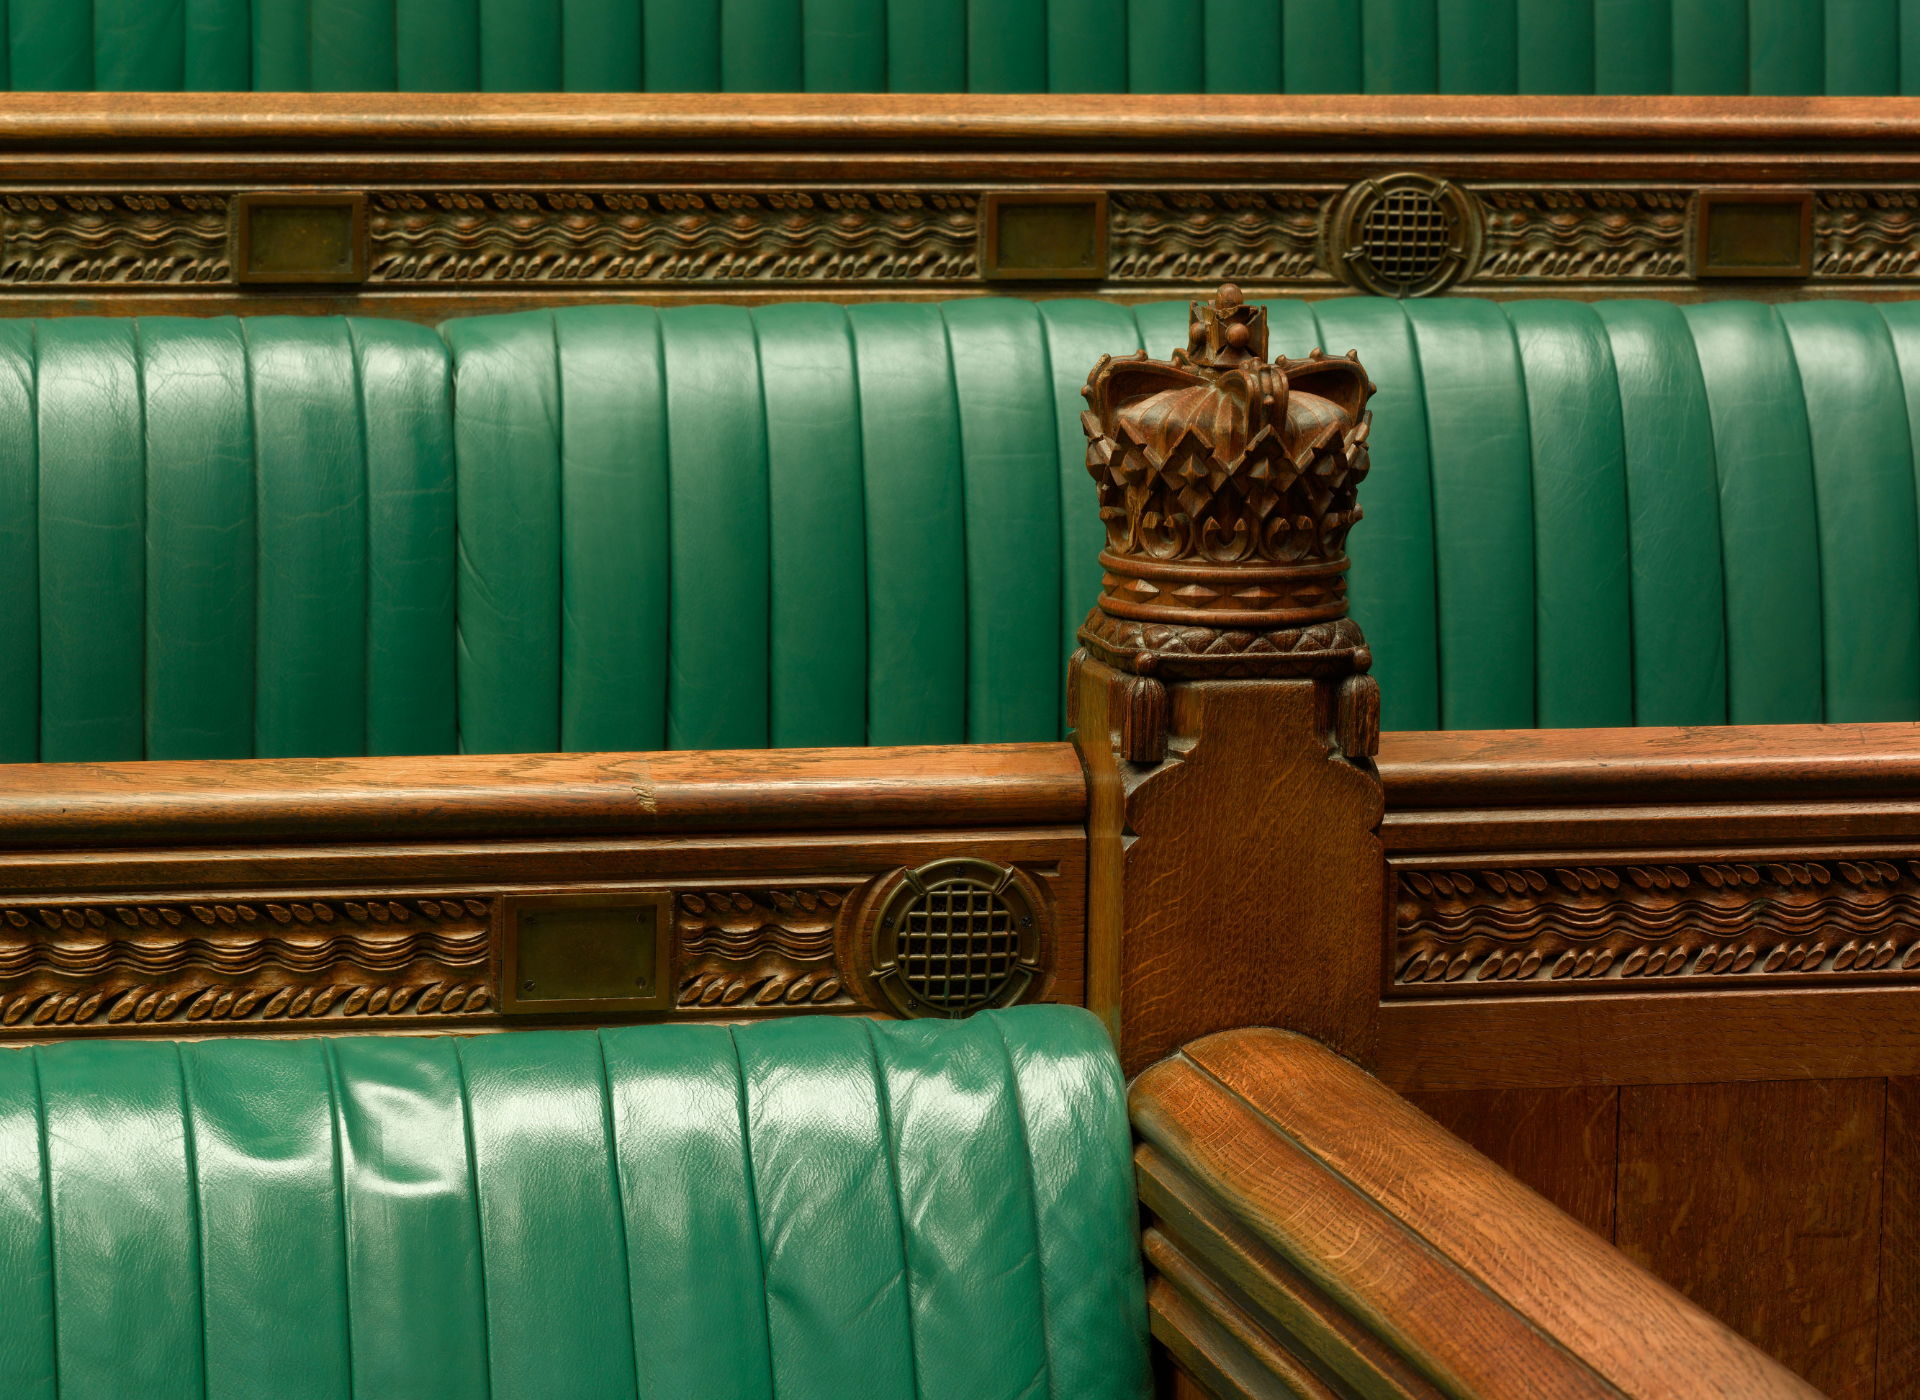 Fisheries appg -